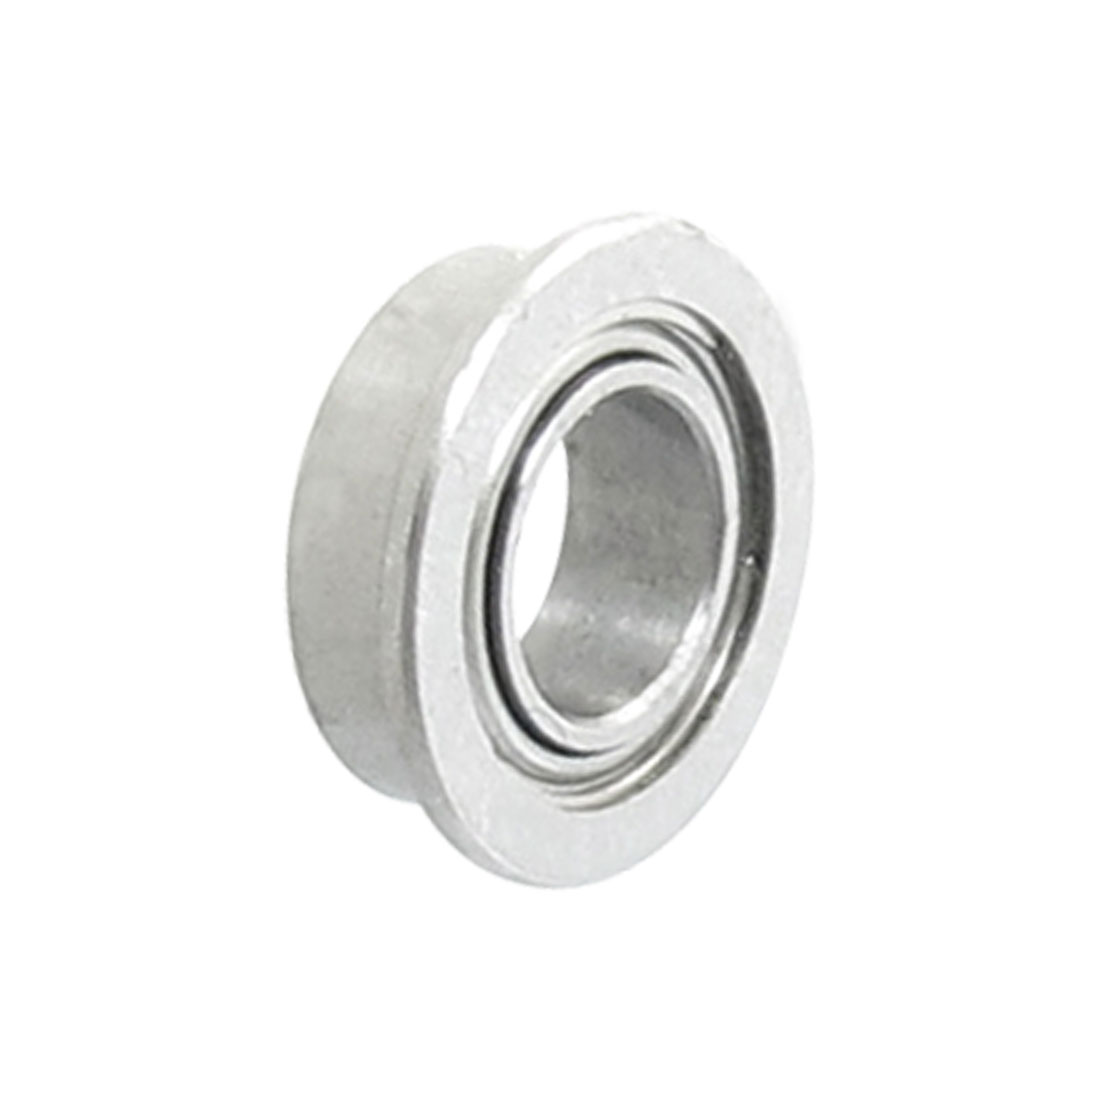 7mm x 4mm x 2.5mm Stainless Steel Sealed Flanged Deep Groove Roller Bearings